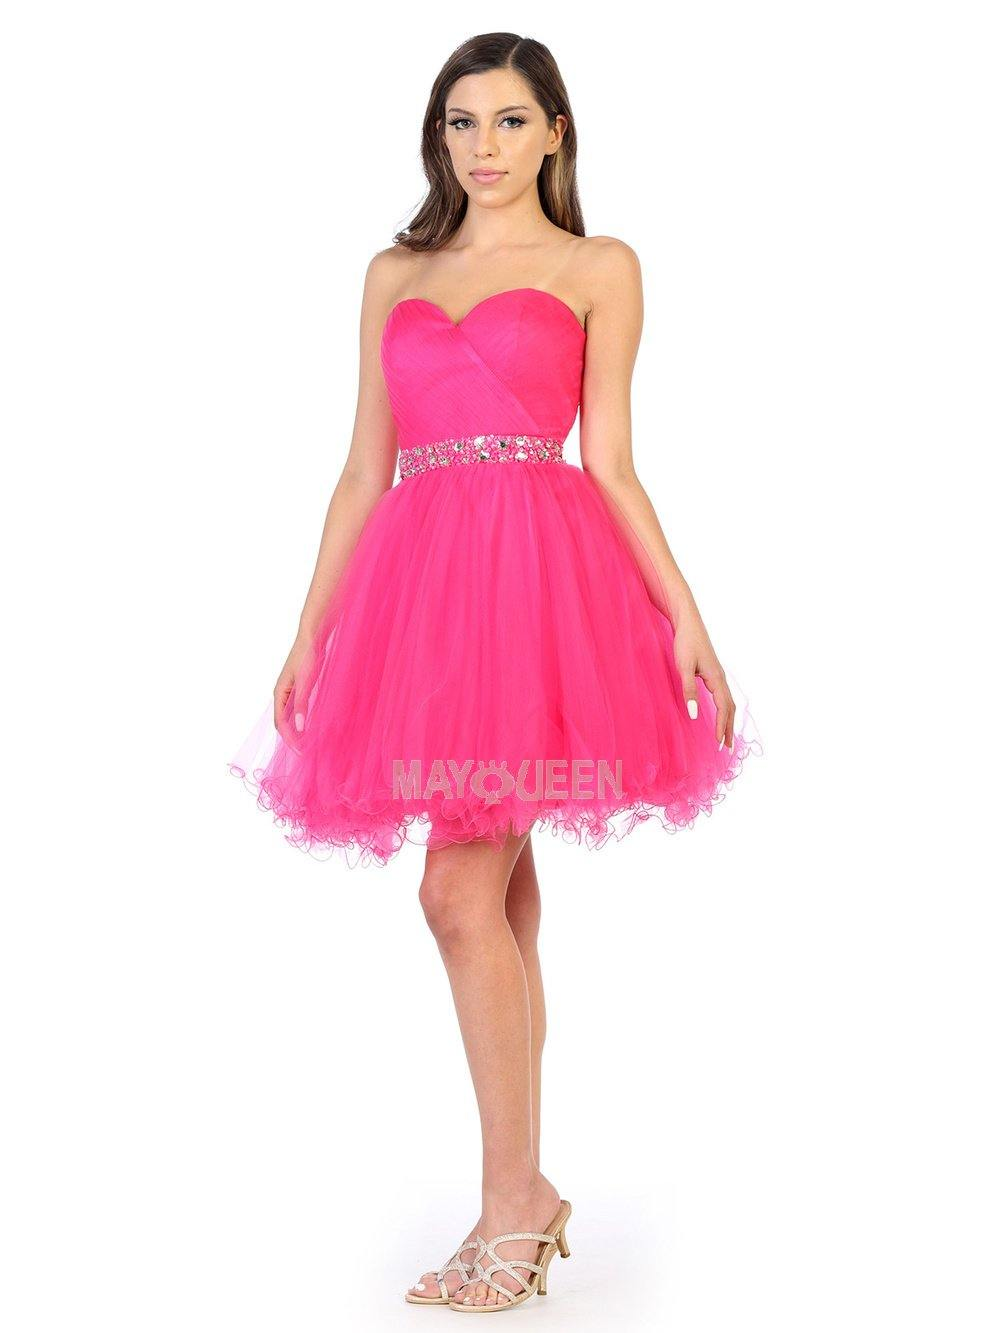 Strapless Short Dress Homecoming - The Dress Outlet